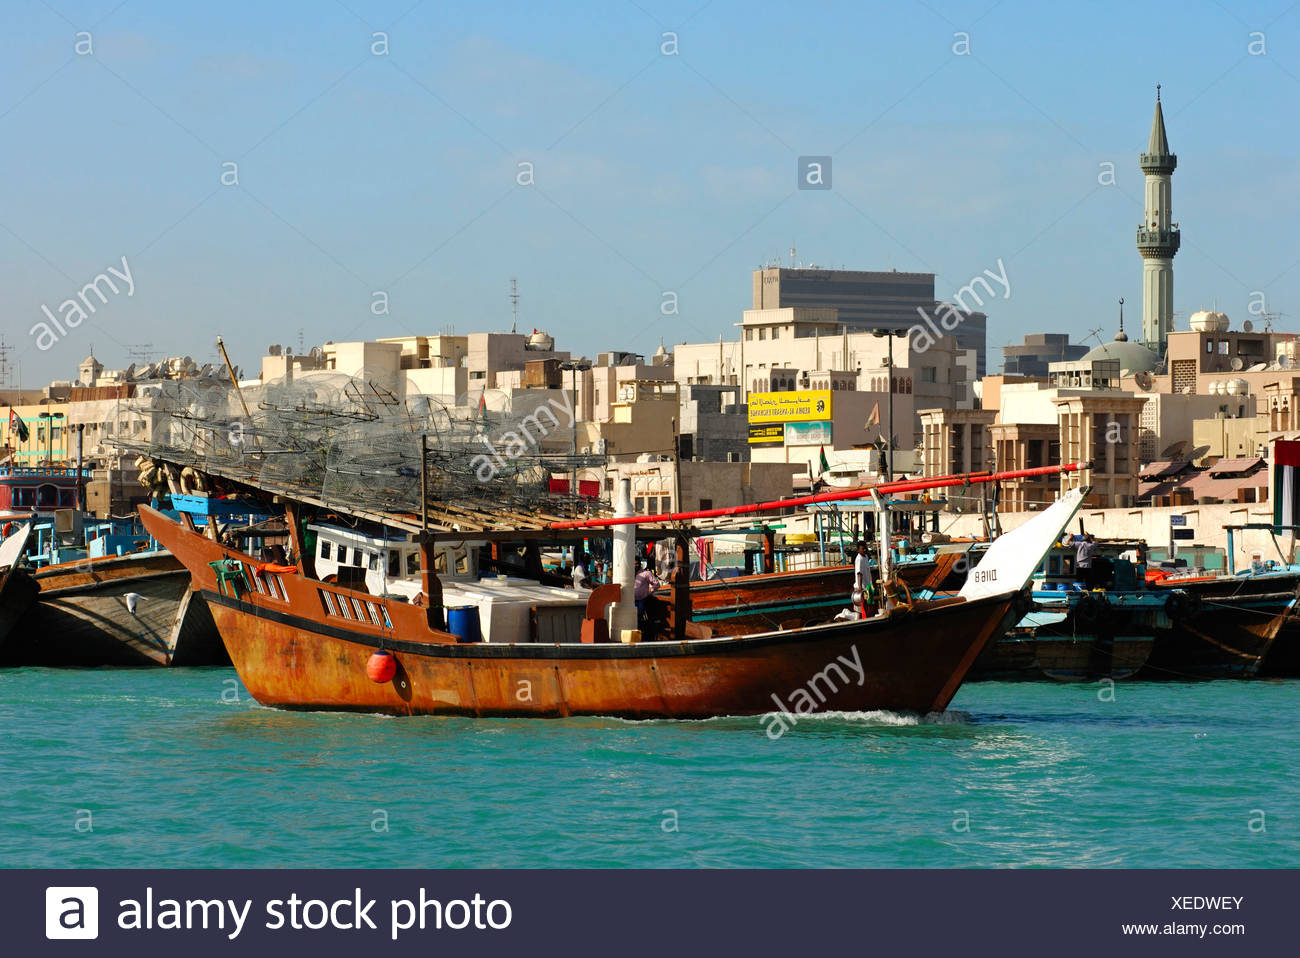 A traditional fisher boat heading out to fish loaded with bow nets in the Dubai Creek in front of the back-drop of the Deira di - Stock Image